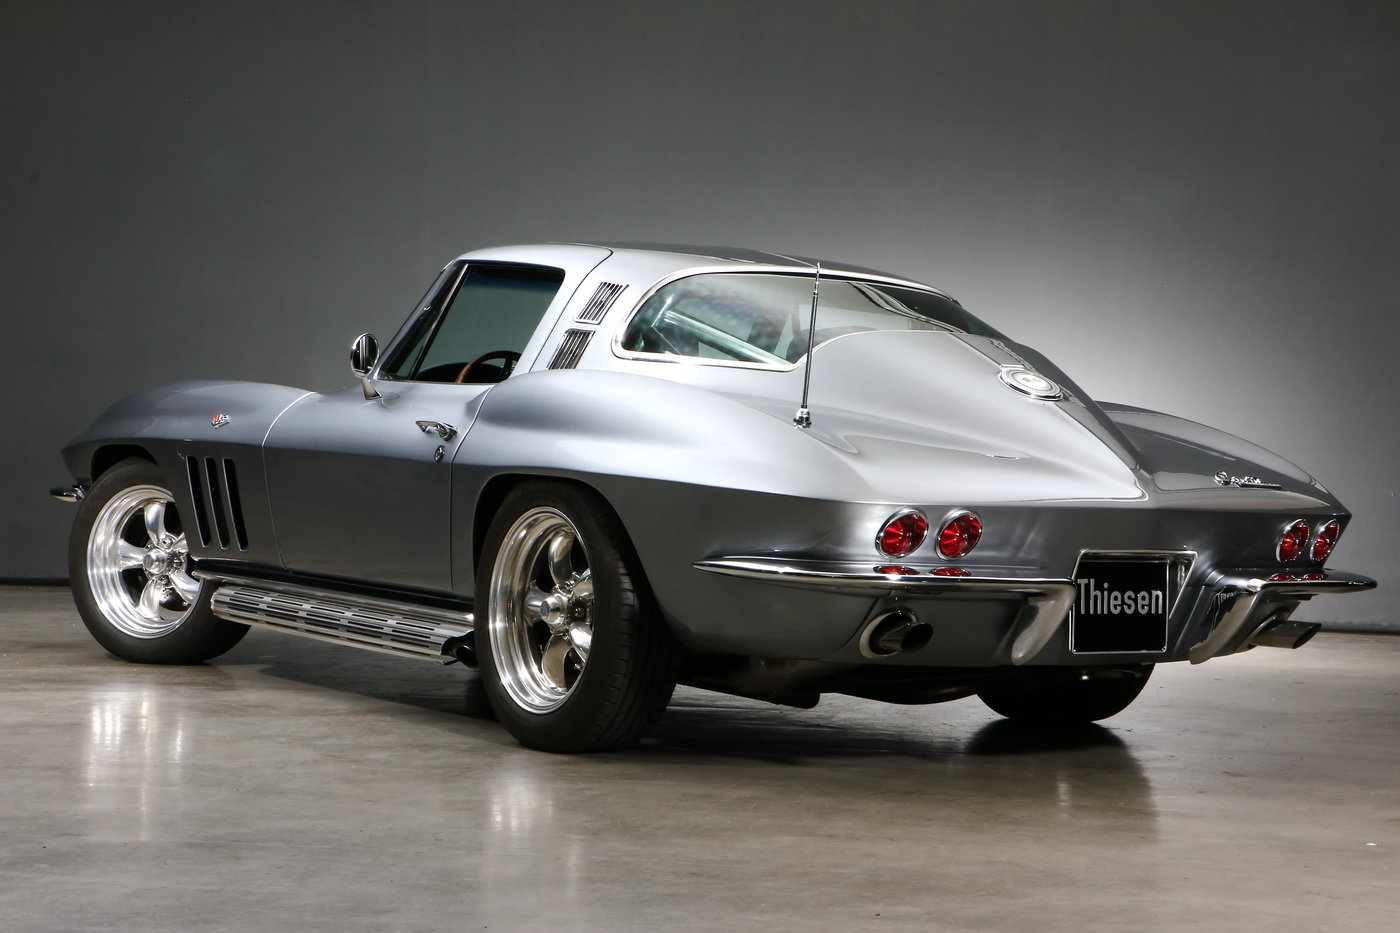 1966 Chevroltet Corvette Sting Ray C2 Coupé For Sale (picture 4 of 6)